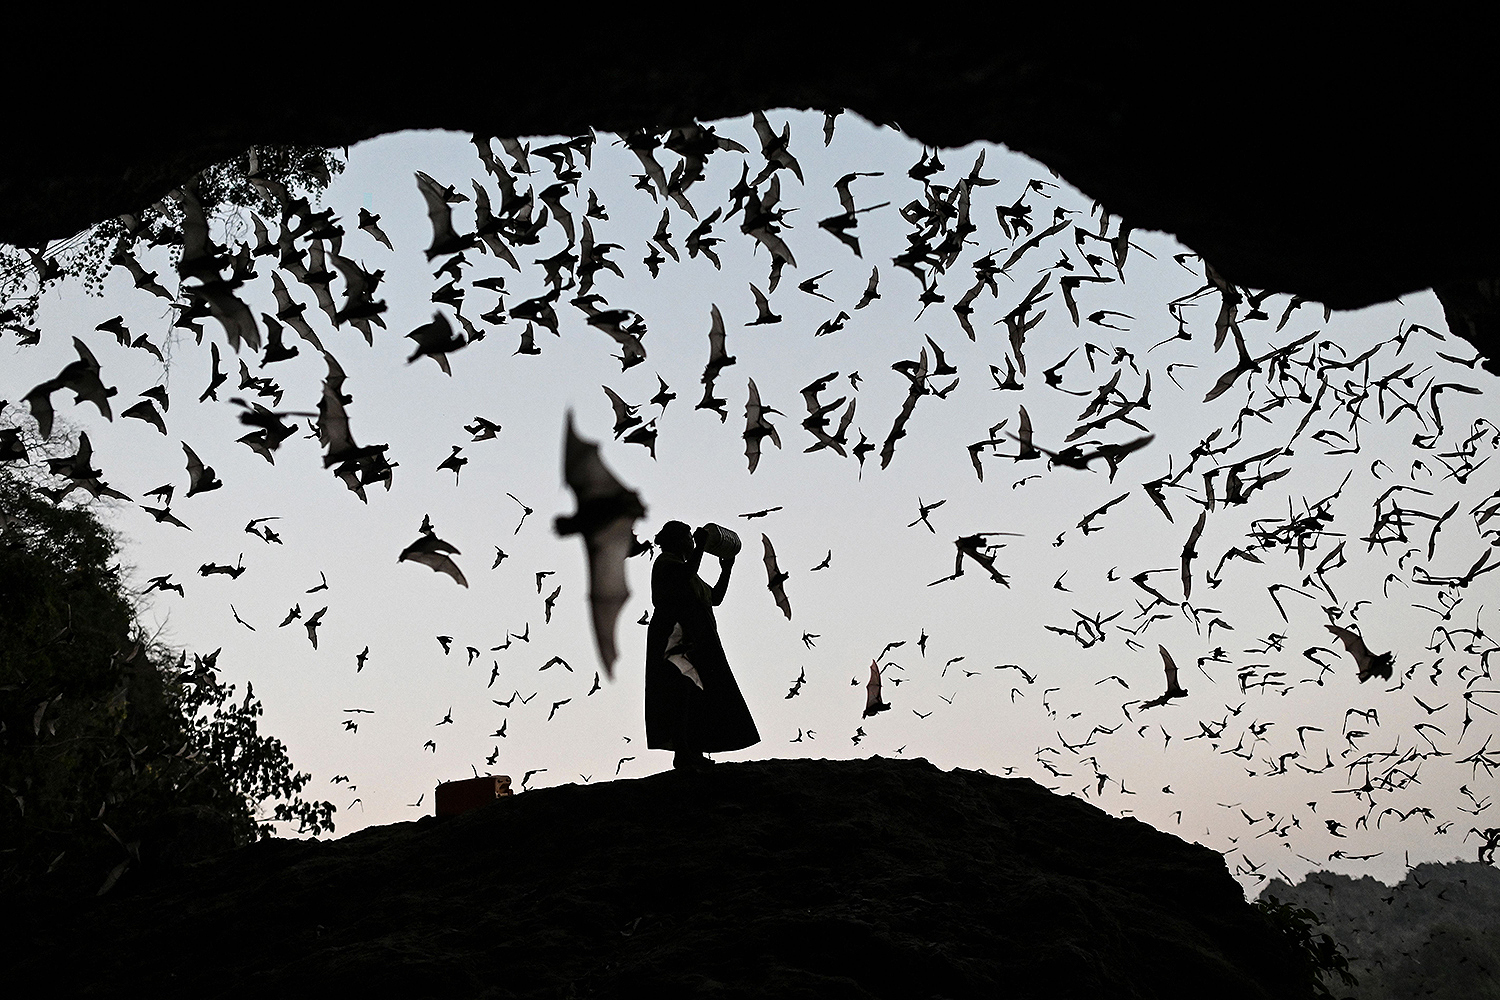 A woman makes noises as she directs bats away from a power tower in Hpa-An, Karen State, Myanmar, on March 1. Ye Aung Thu/AFP via Getty Images